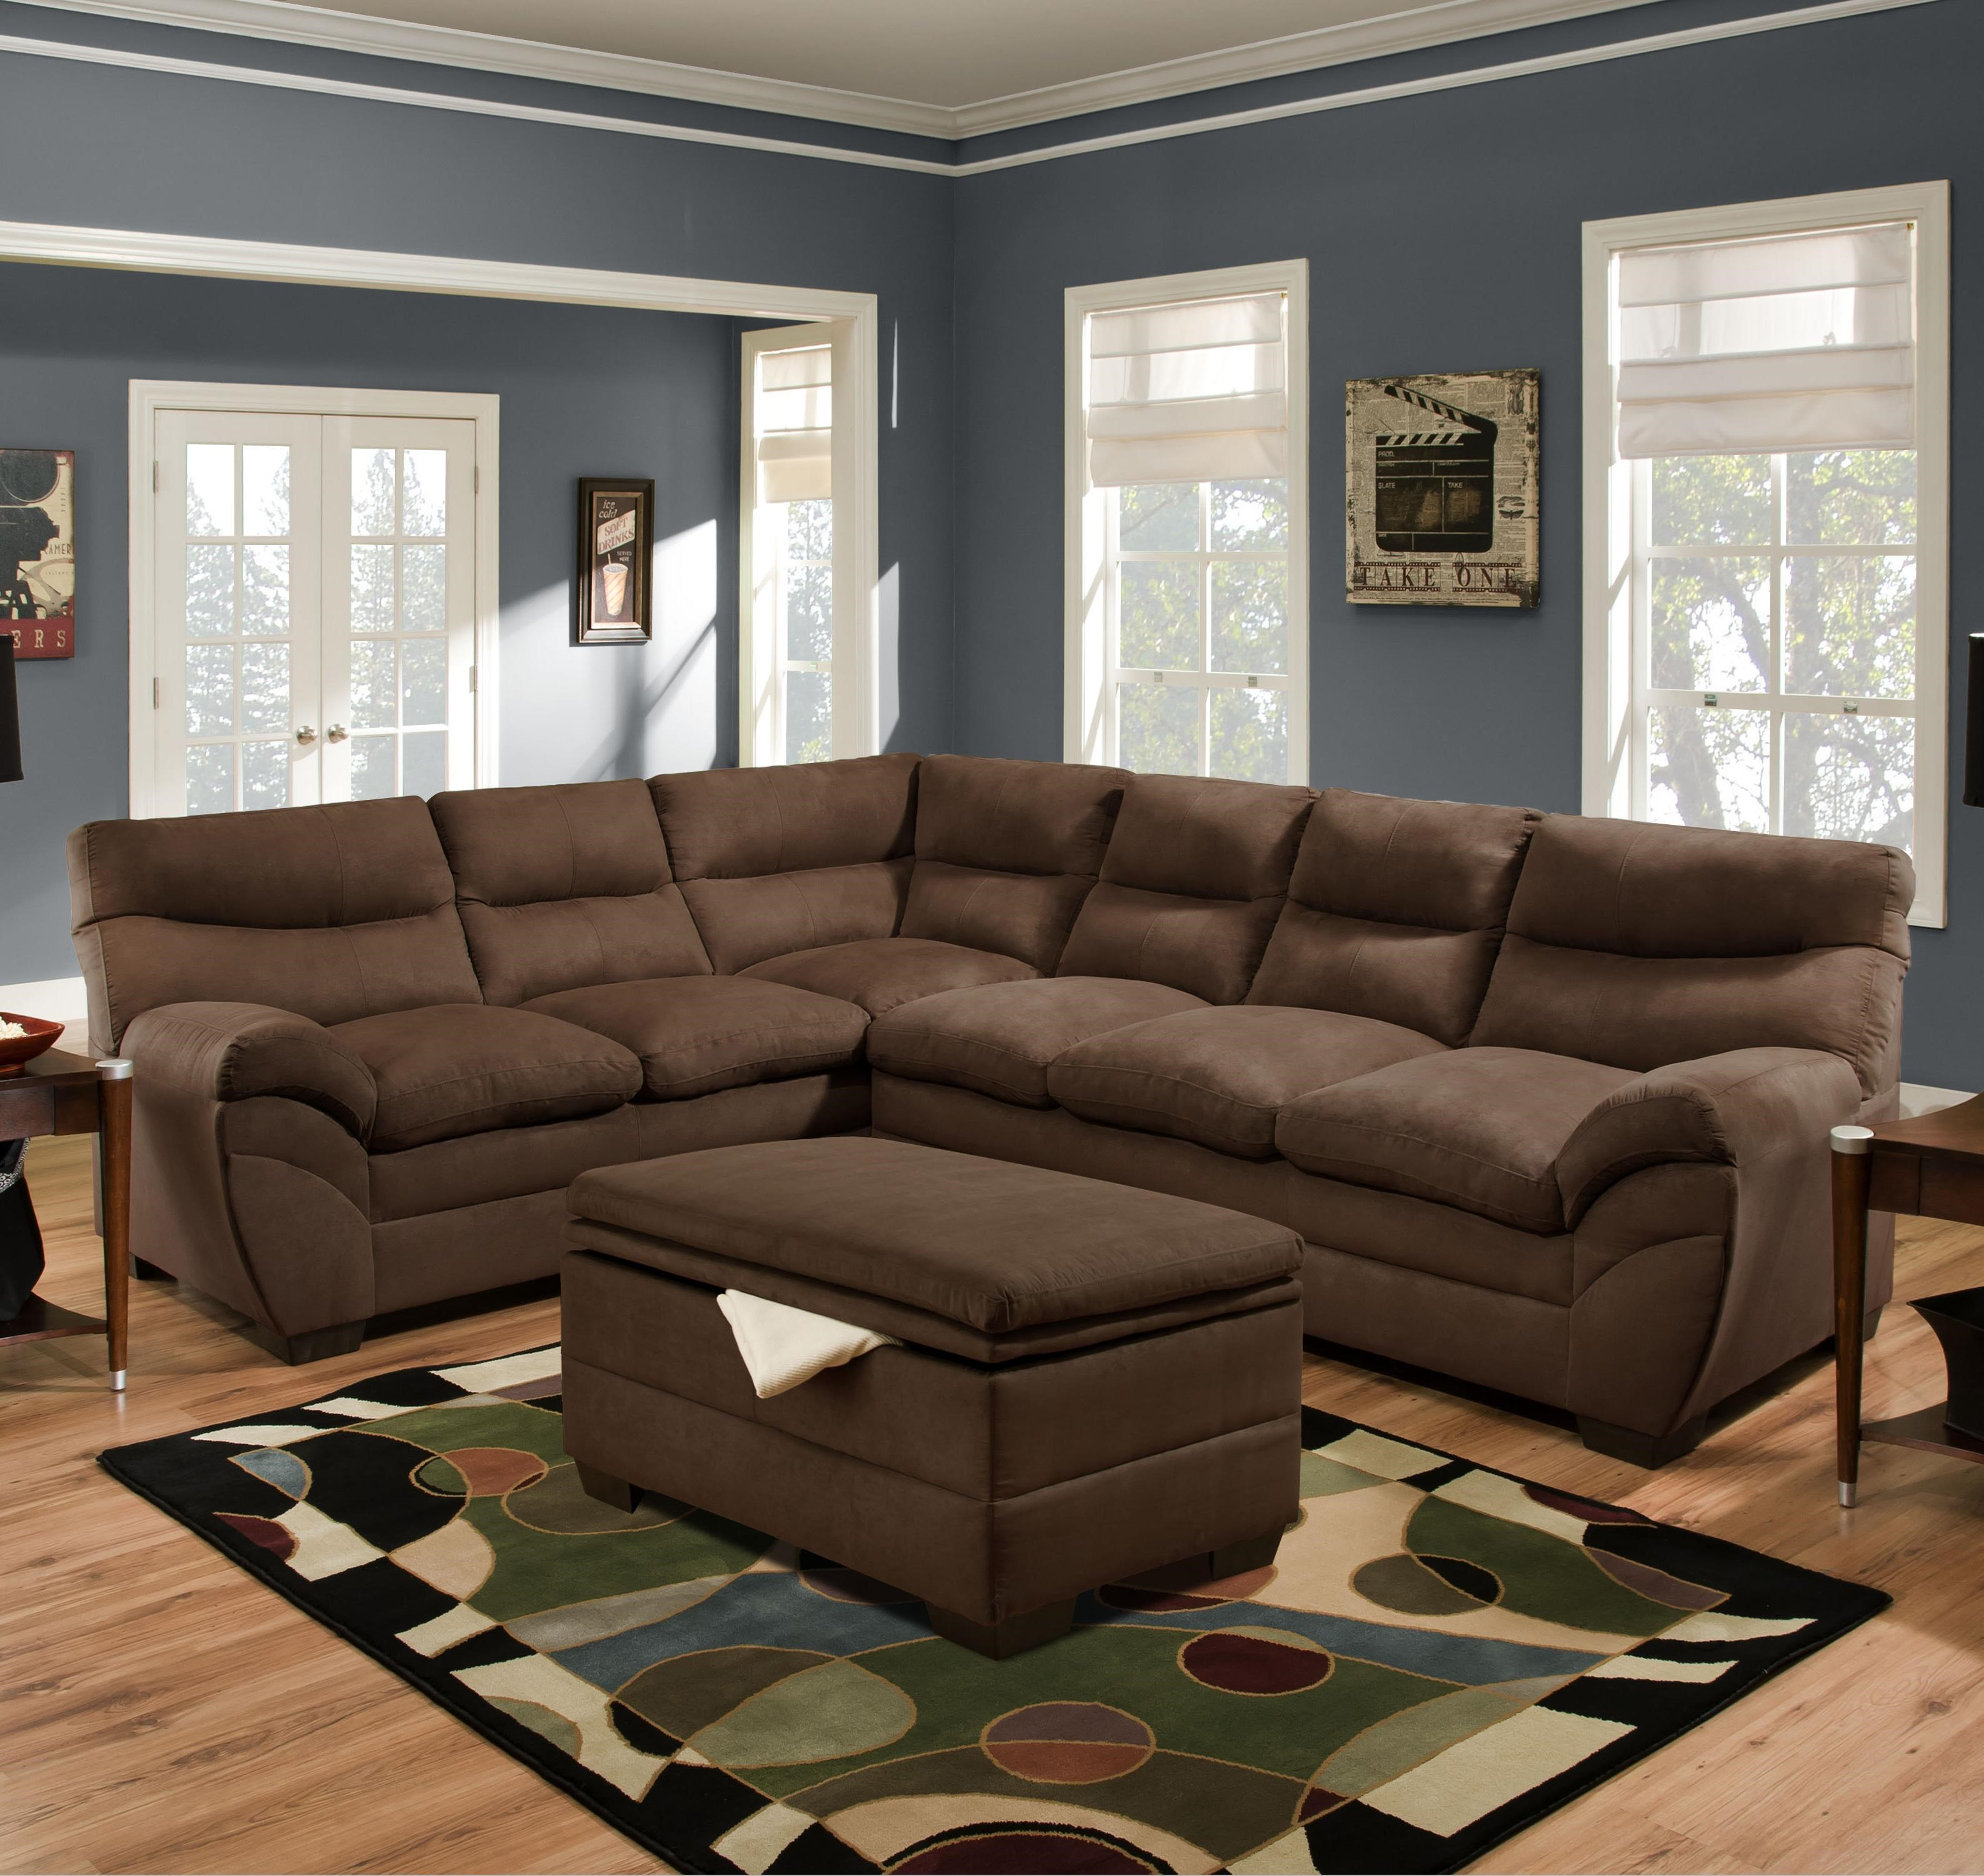 Simmons Upholstery 9515 Casual Sectional Sofa   Dunk U0026 Bright Furniture   Sectional  Sofas